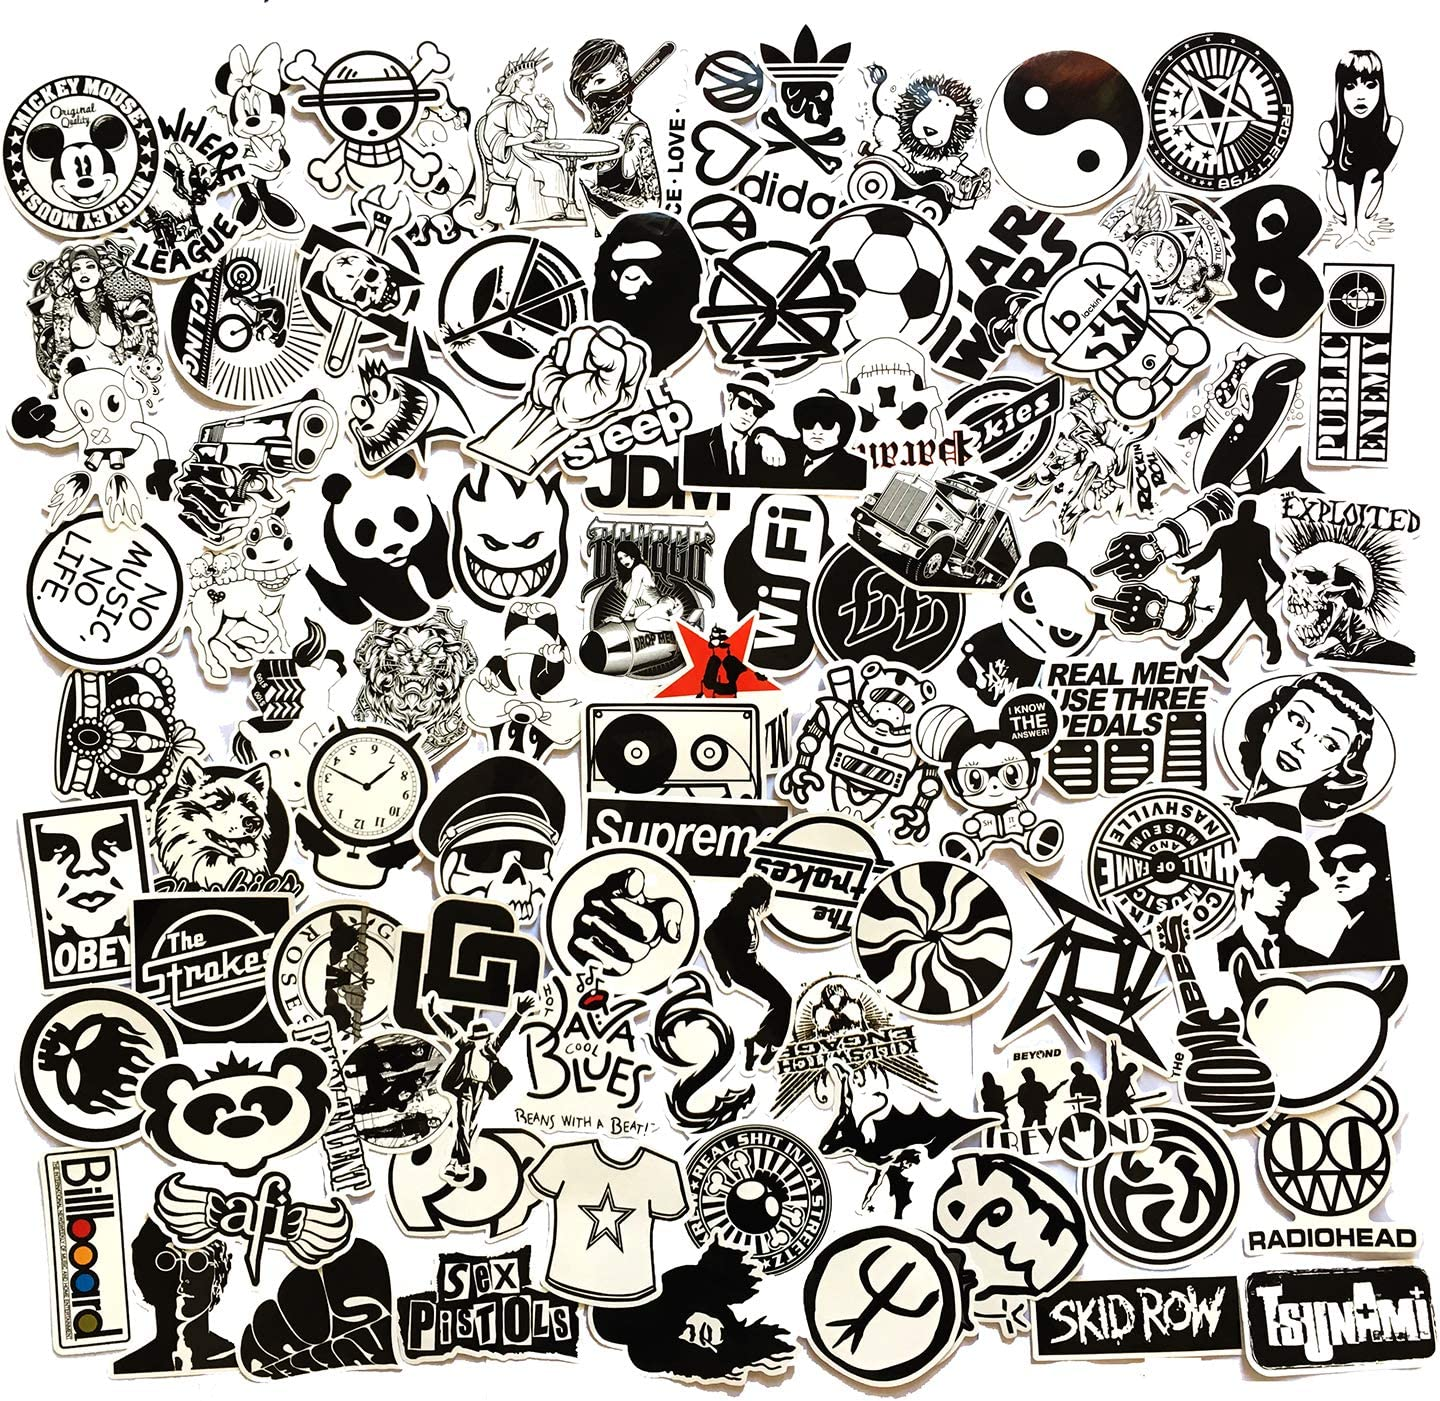 Black and White Sticker Vinyls Decals for Laptop,Kids,Cars,Motorcycle,Bicycle,Skateboard Luggage,Bumper Stickers Hippie Decals Bomb Waterproof (Black White 100PCS)